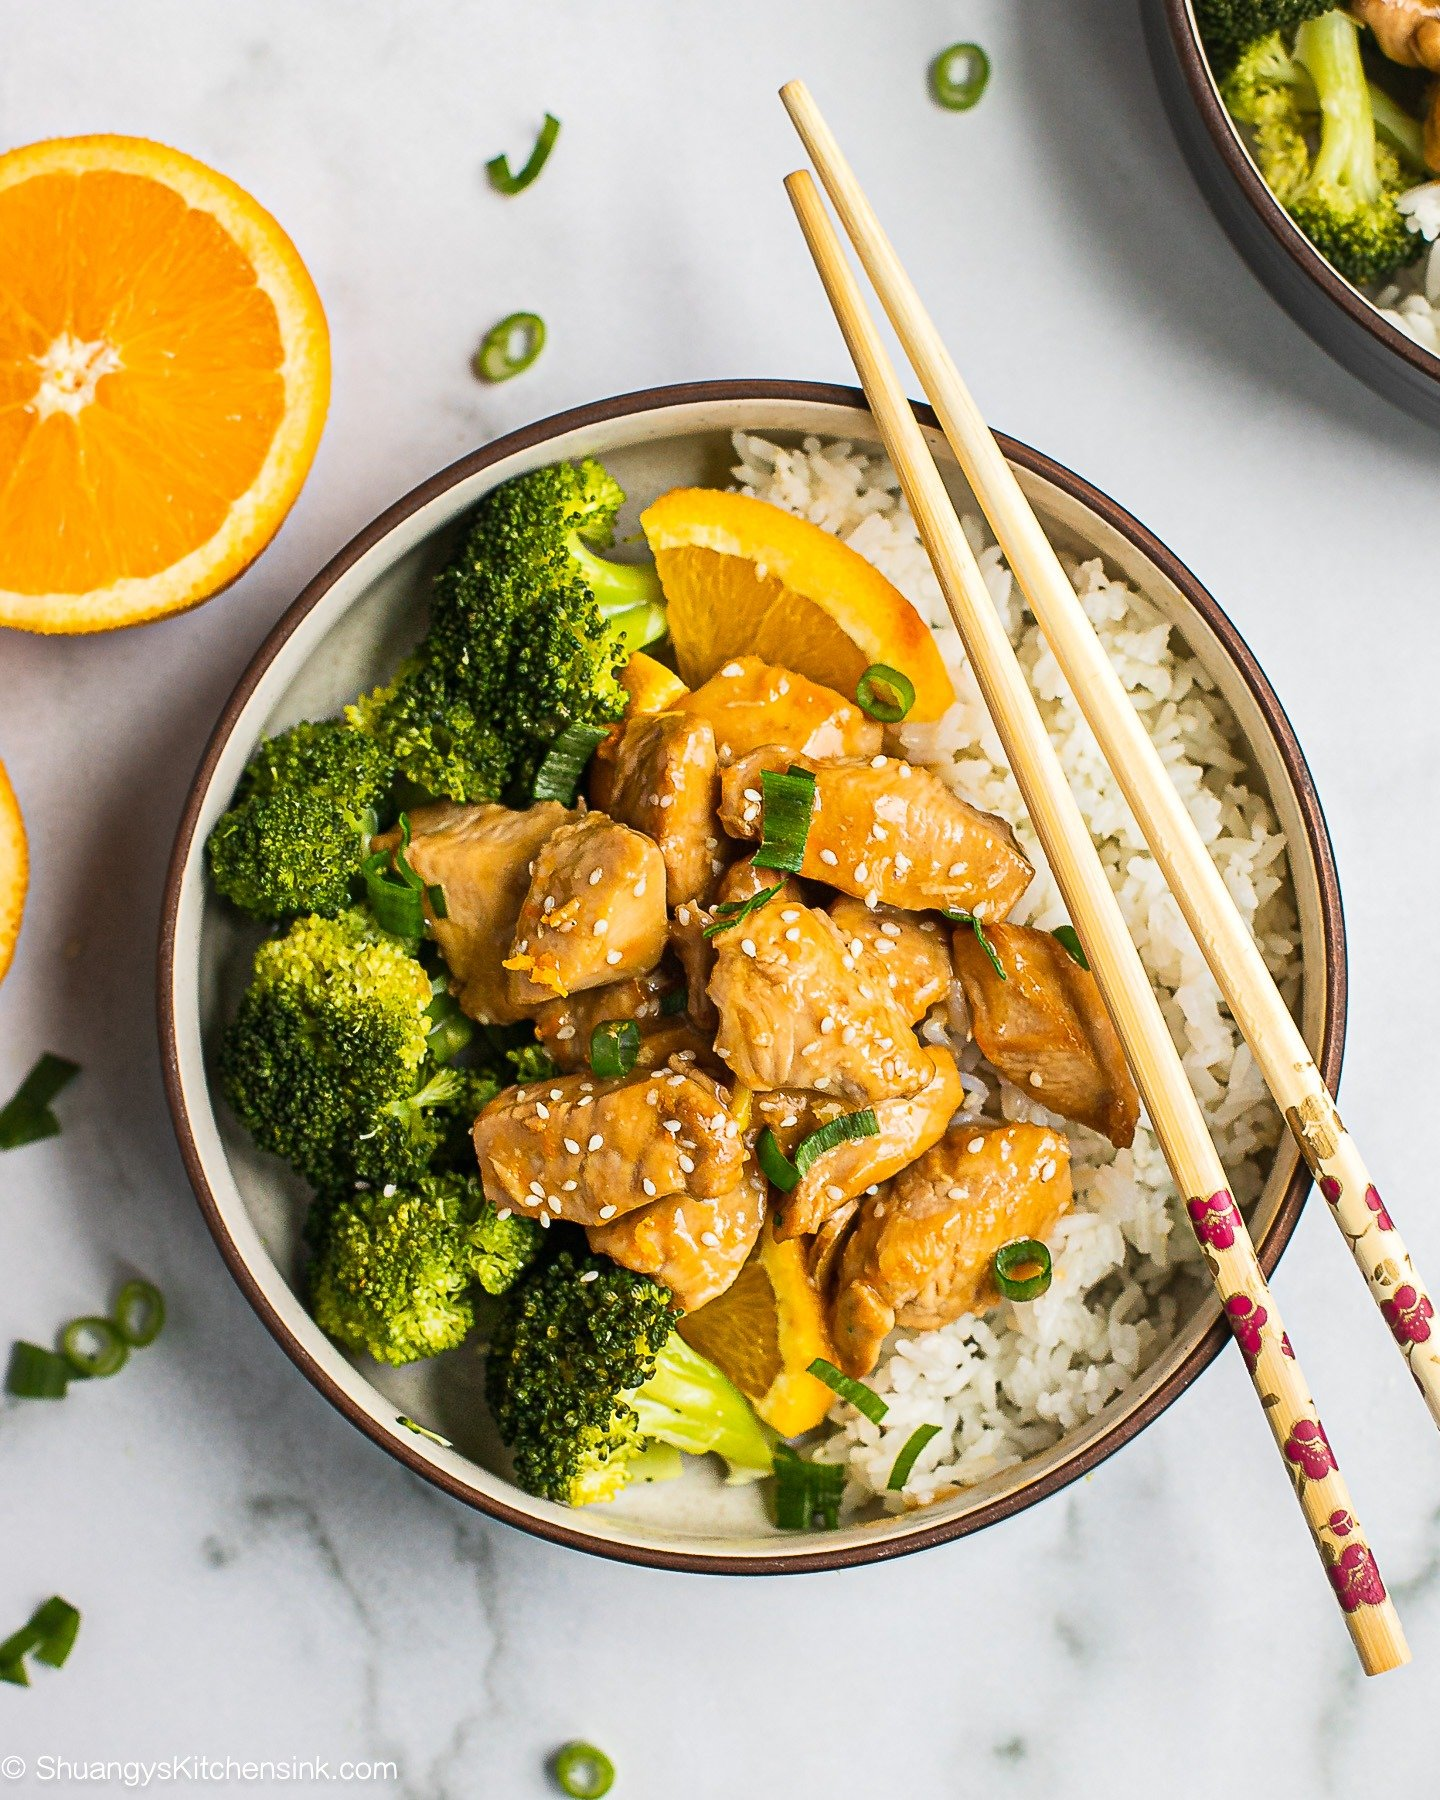 A bowl of paleo orange chicken over rice and steamed broccoli. There is a pair of chopsticks on the bowl.